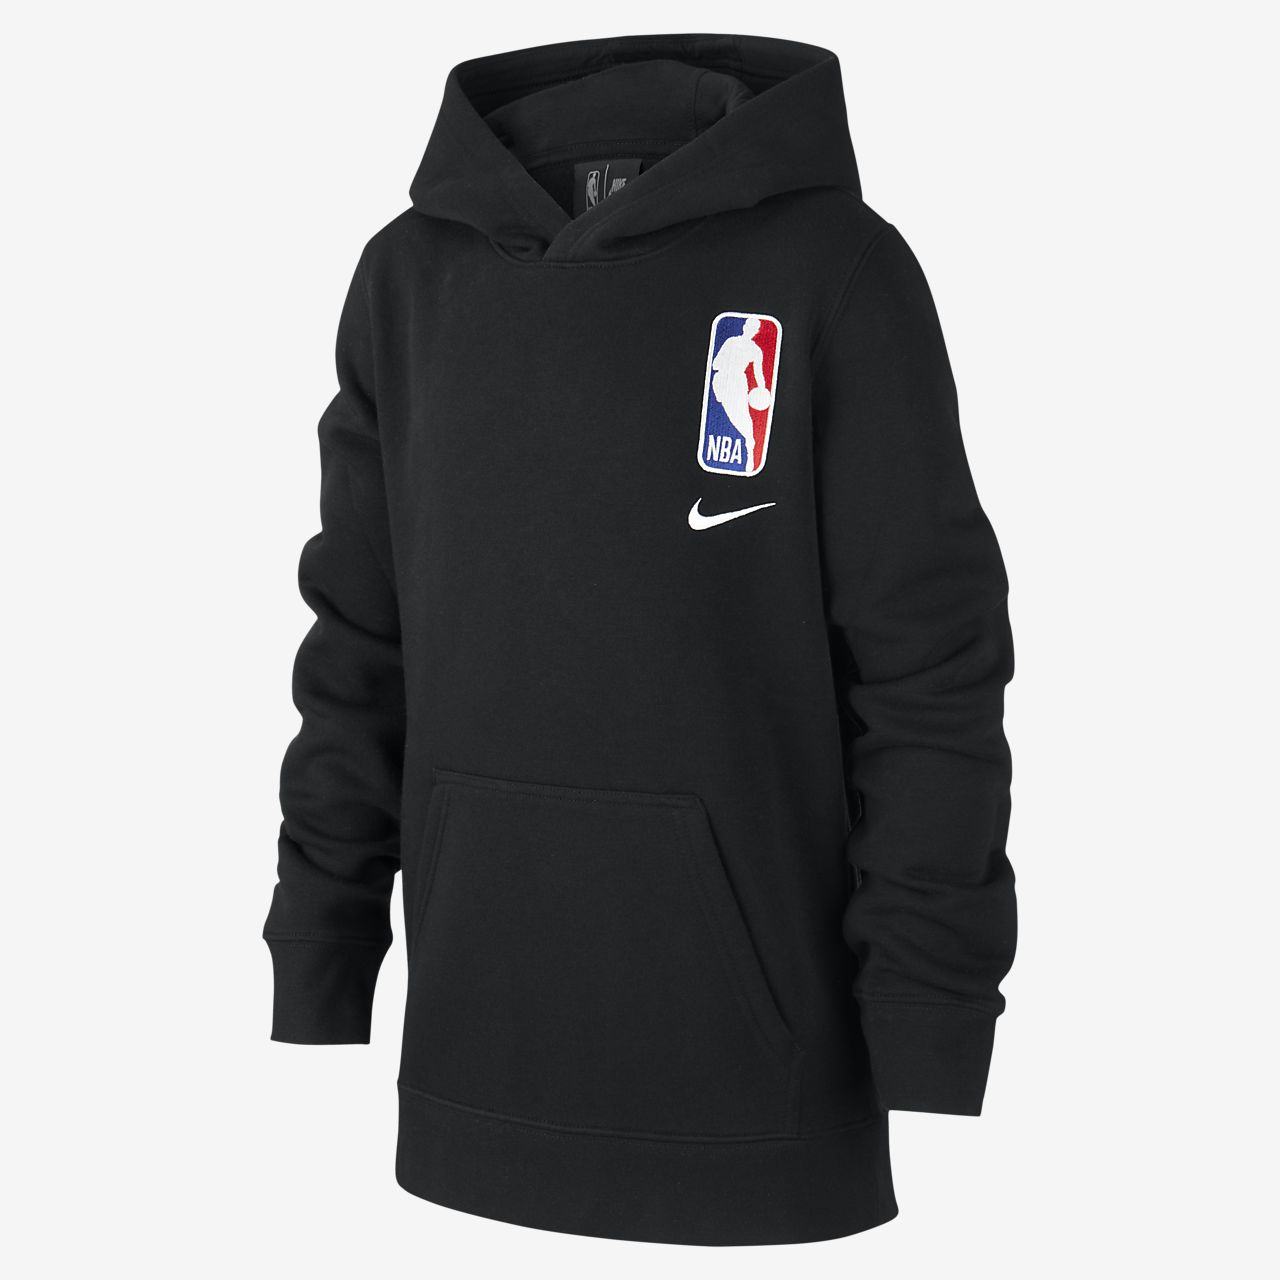 Team 31 Courtside Older Kids' Nike NBA Hoodie